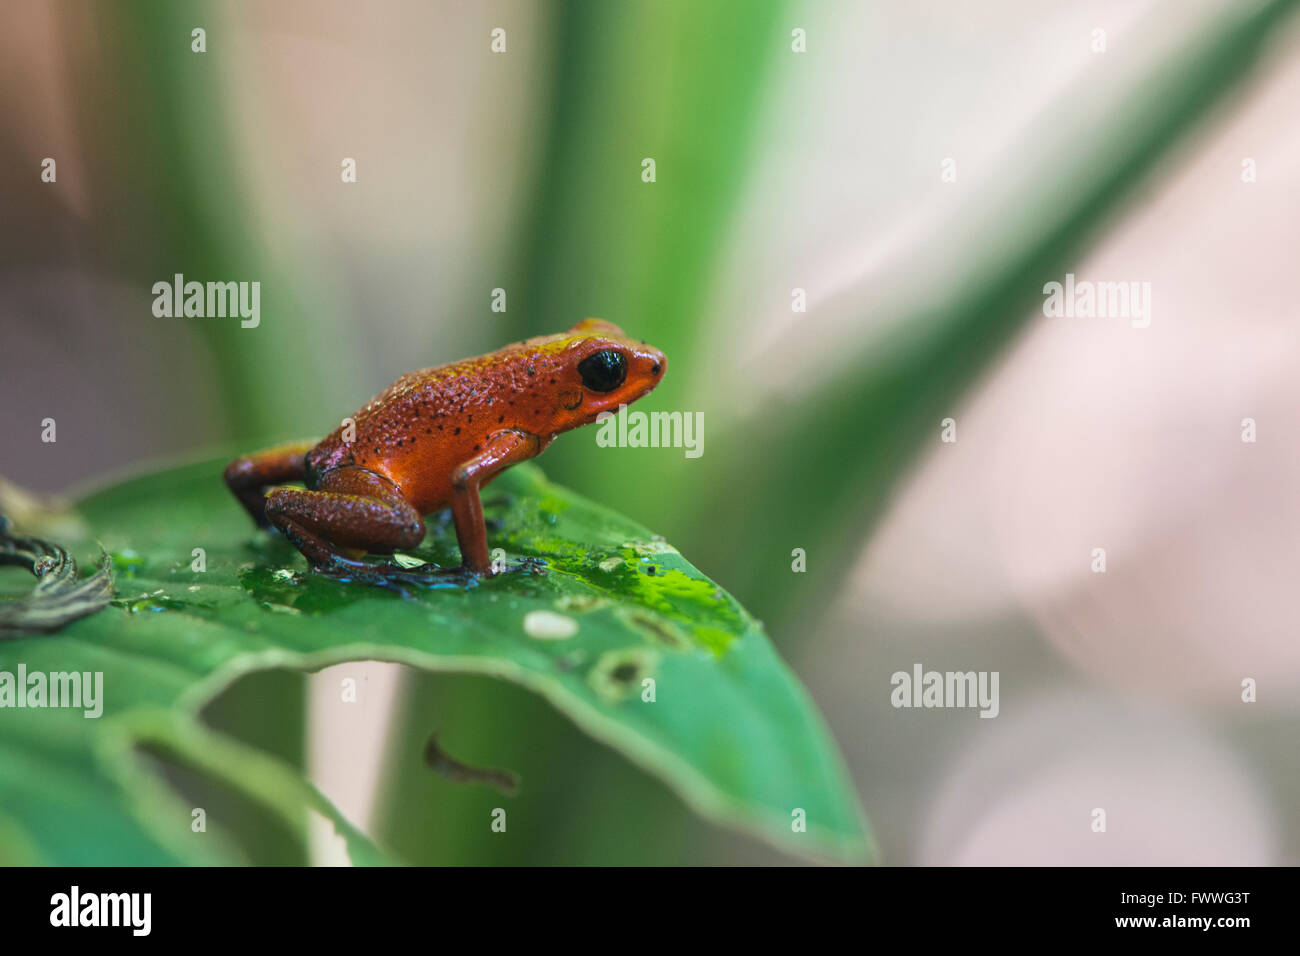 Strawberry poison-dart frog (Oophaga pumilio) perched on a leaf, Heredia Province, Costa Rica Stock Photo